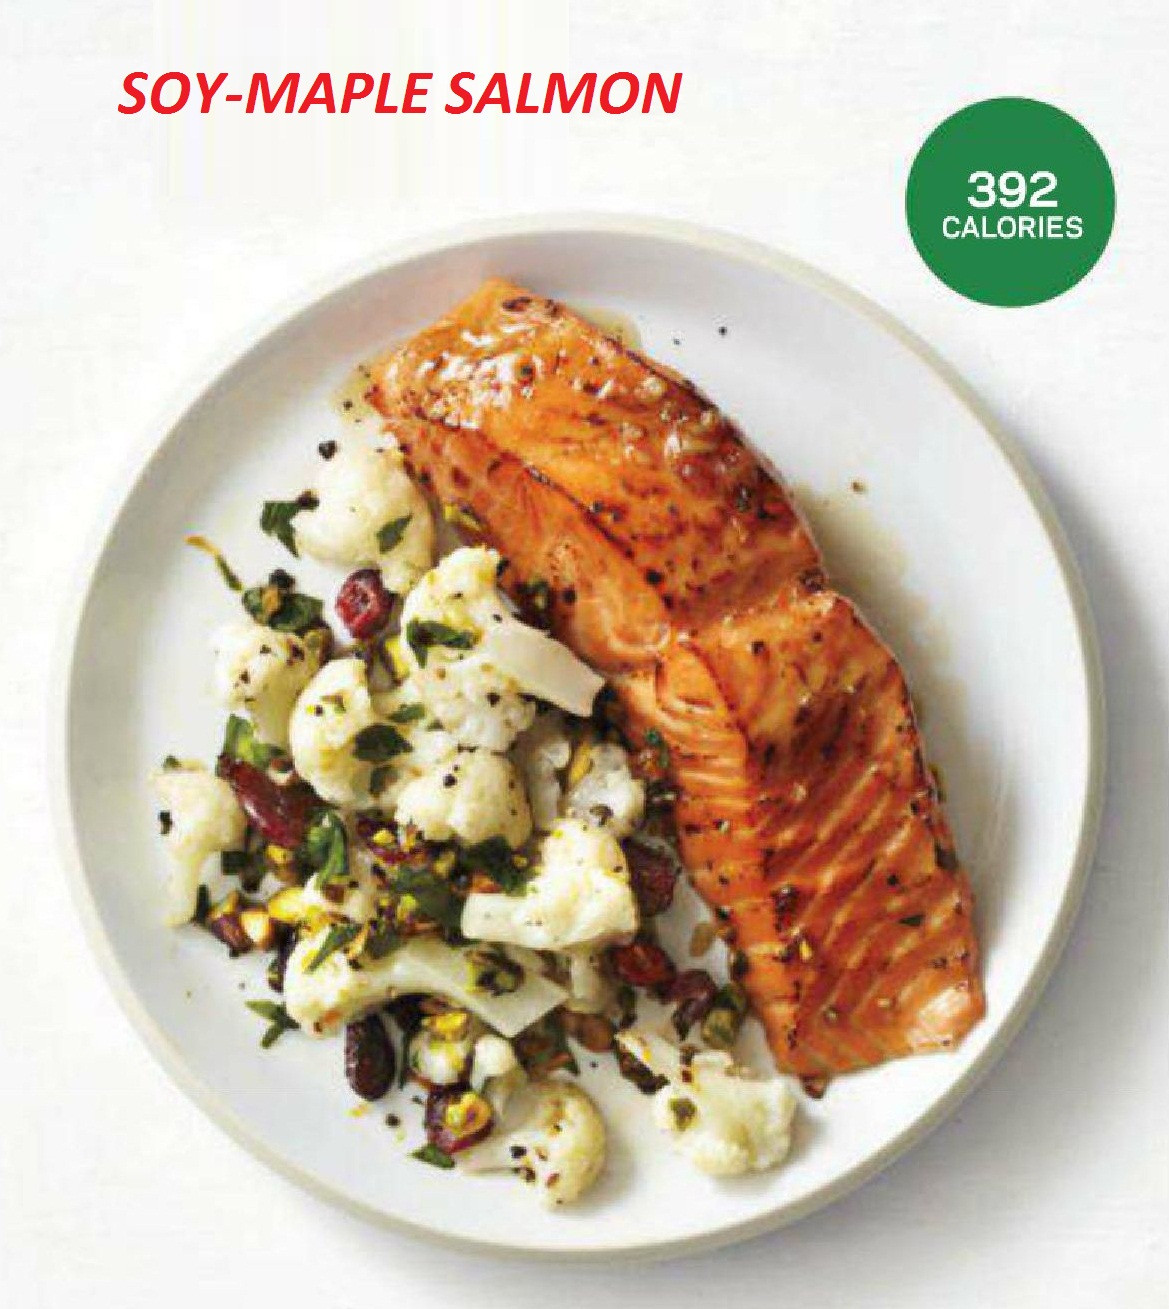 Fish Healthy Recipes  SOY MAPLE SALMON Healthy Fish Recipe 392 Calories How